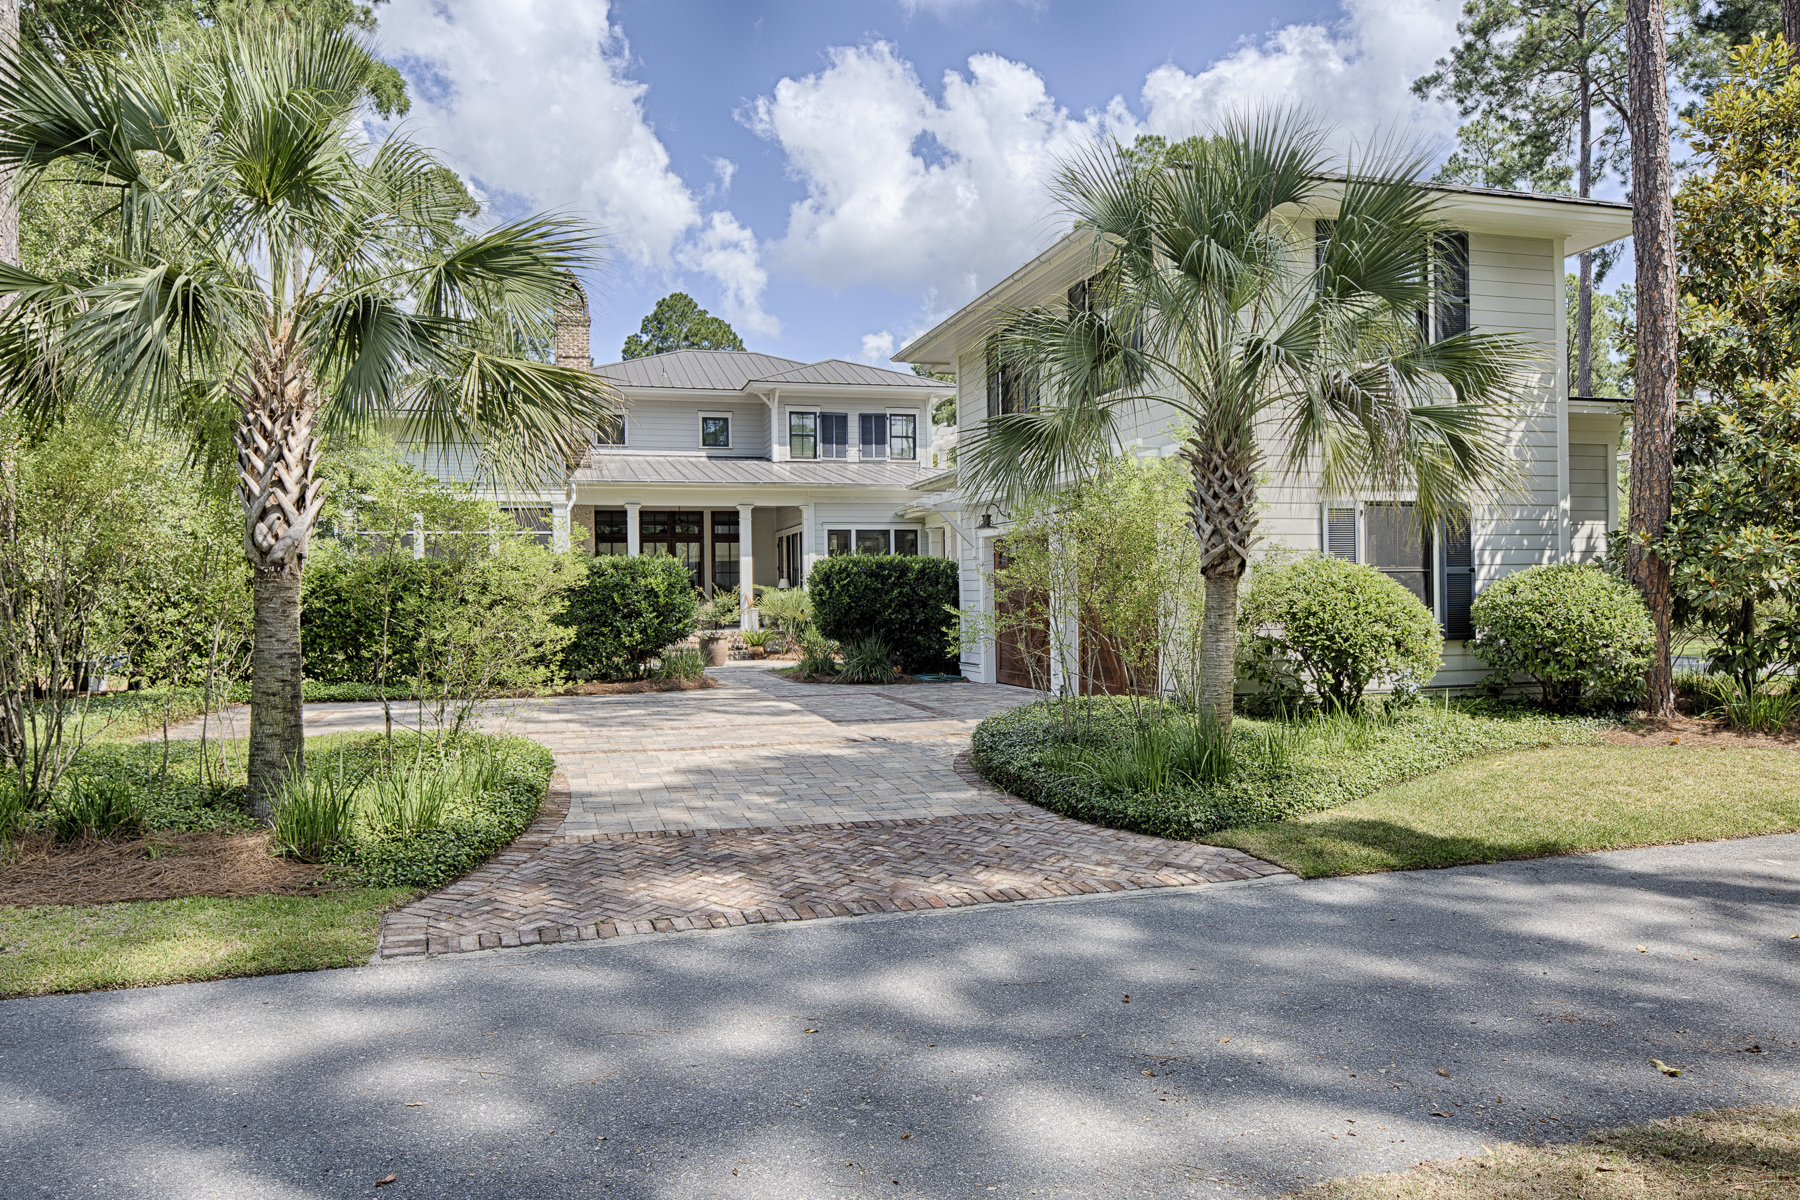 Single Family Home for Sale at 3 Irene Street Bluffton, South Carolina 29910 United States